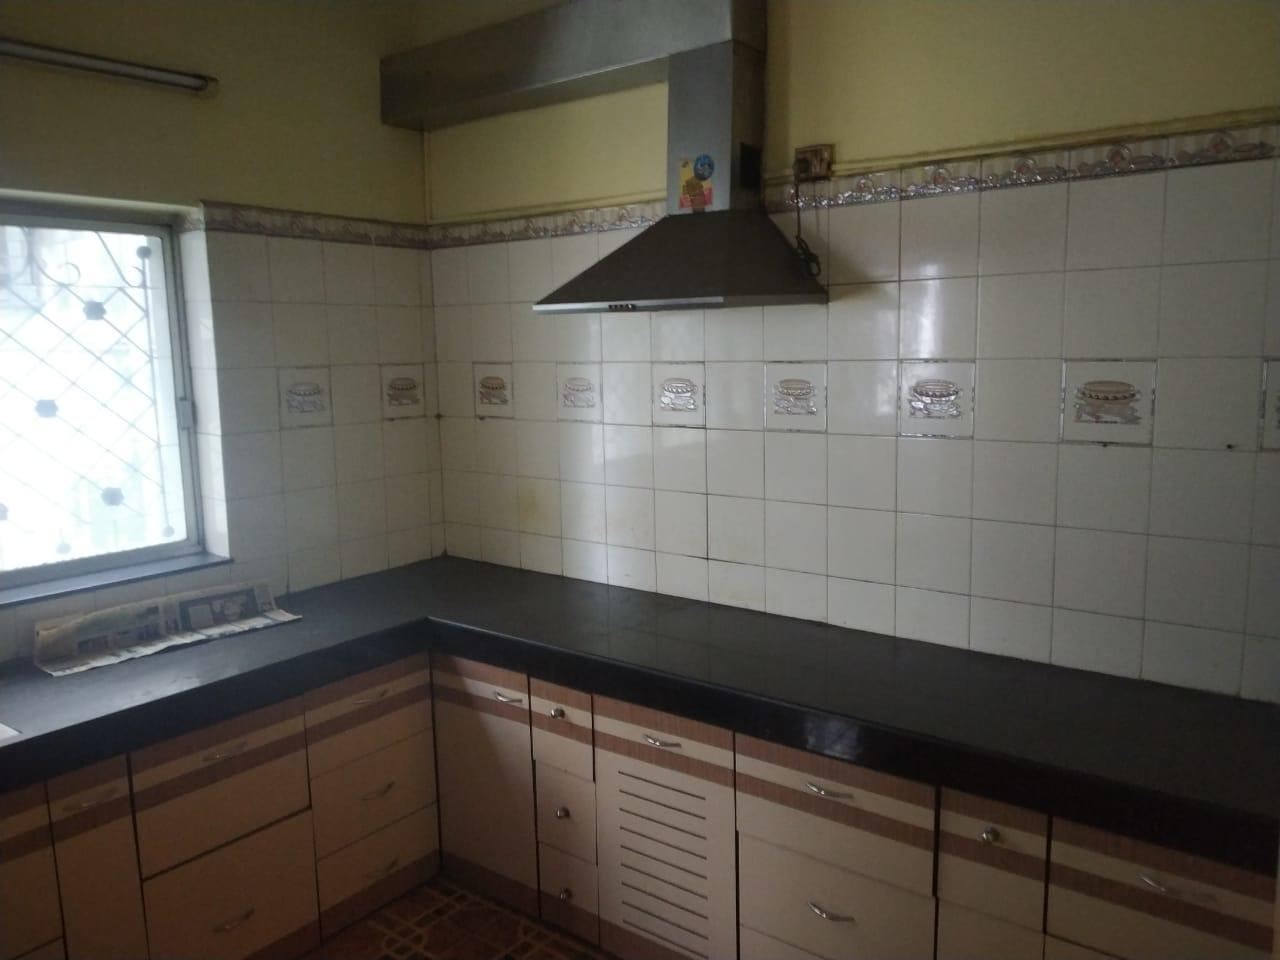 3bhk apartment available for rent at Ramdas peth, nagpur